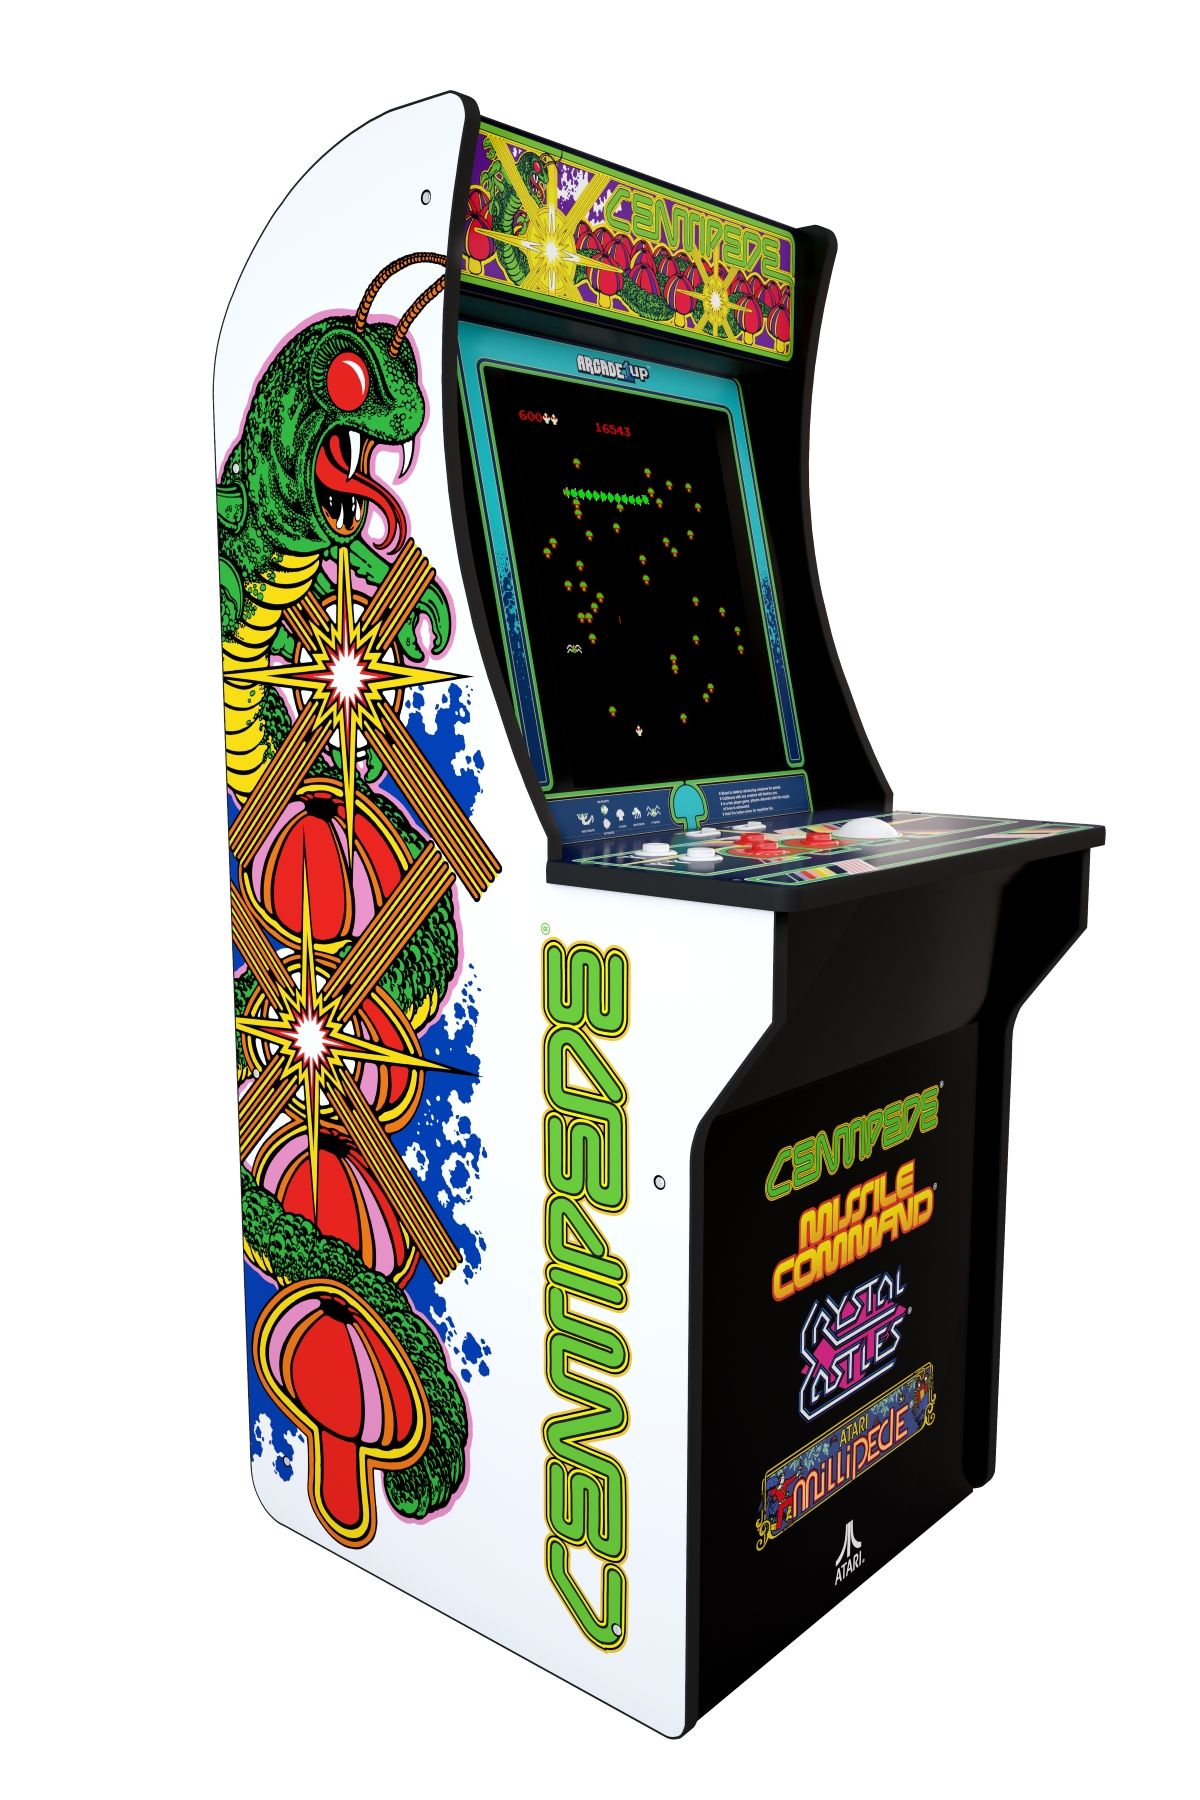 You can buy an Arcade1Up retro arcade cabinet for less than